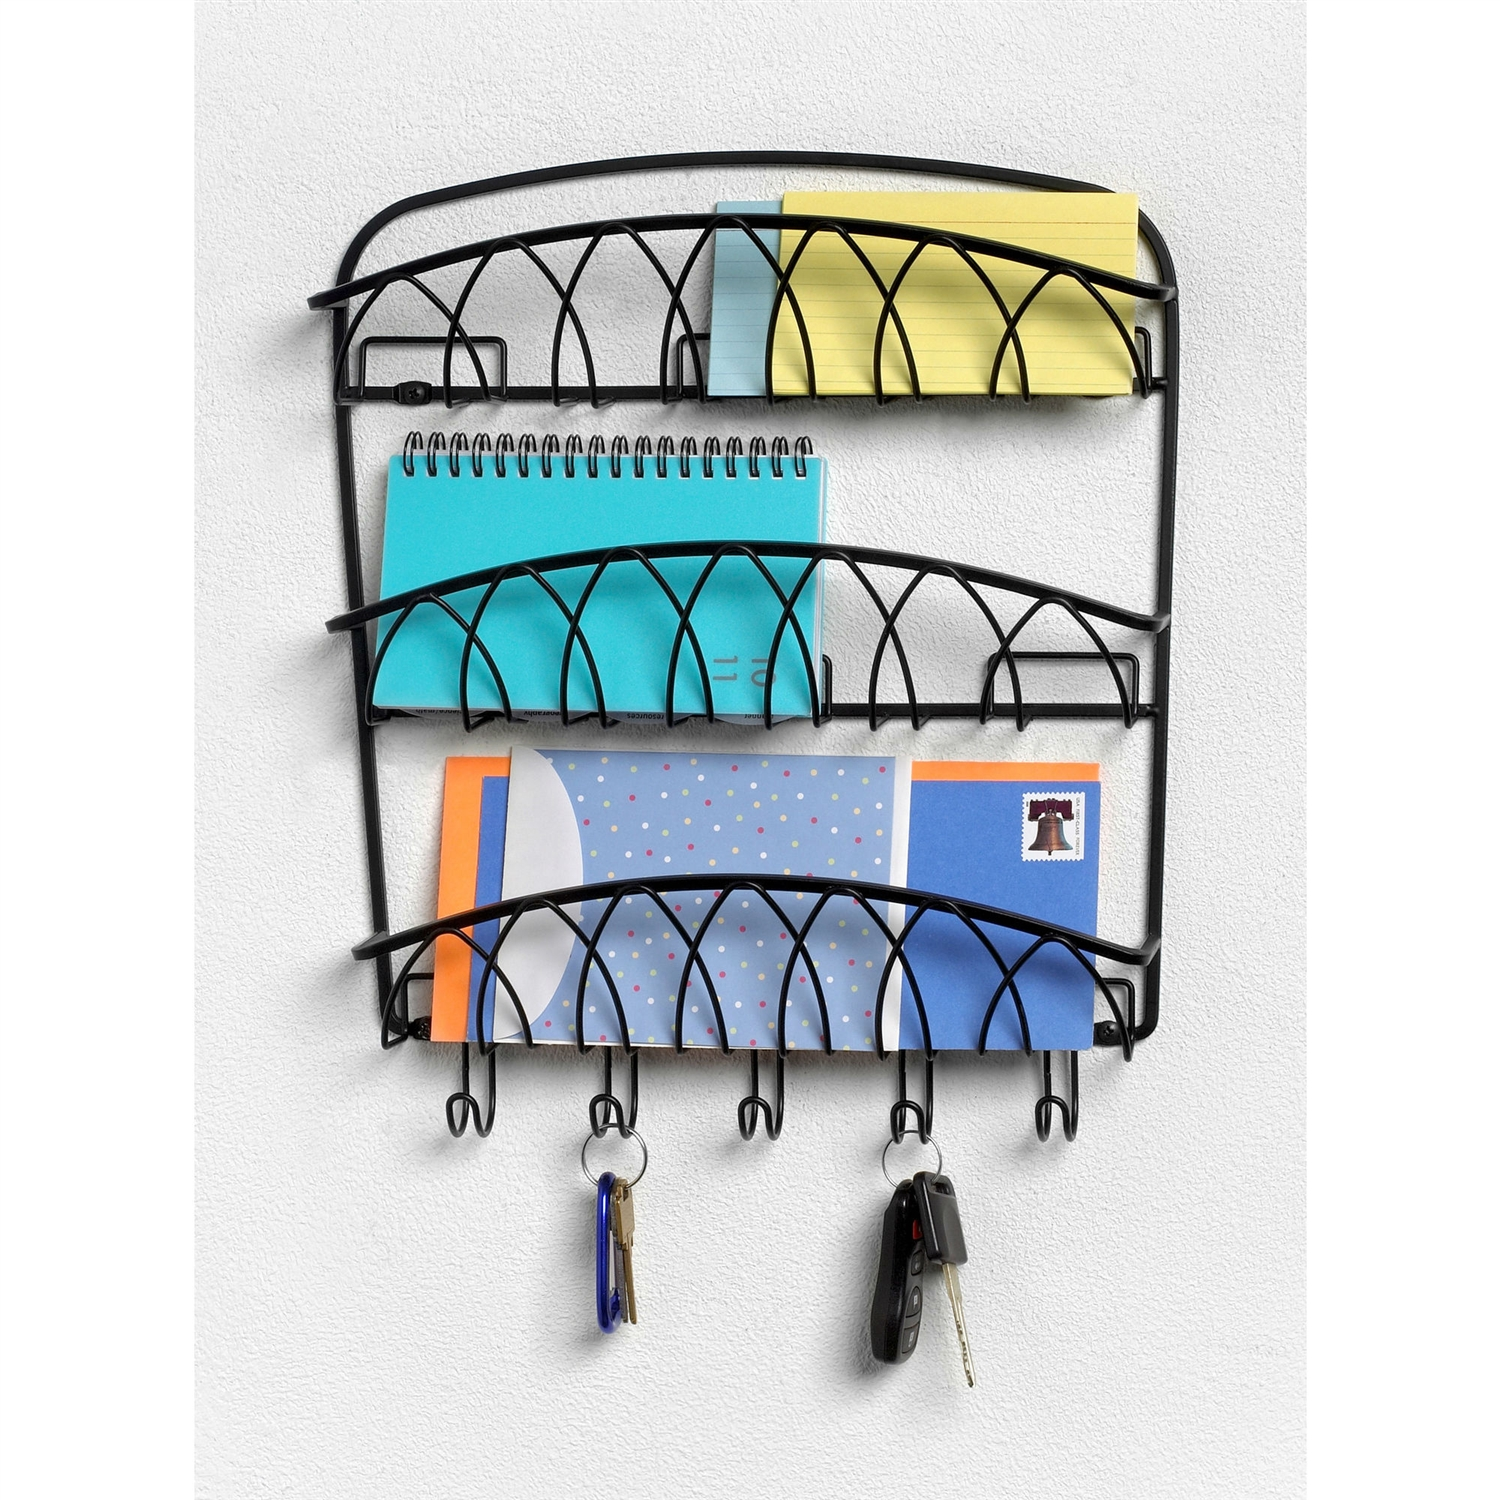 This 3-Tier Letter Holder Organizer with Key Hooks in Black Metal Finish would be a great addition to your home. It has a steel construction and a black finish. For convenient letter storage; Can be wall mounted; For hanging keys, jewelry and other small items; Wipe with damp cloth and towel dry.